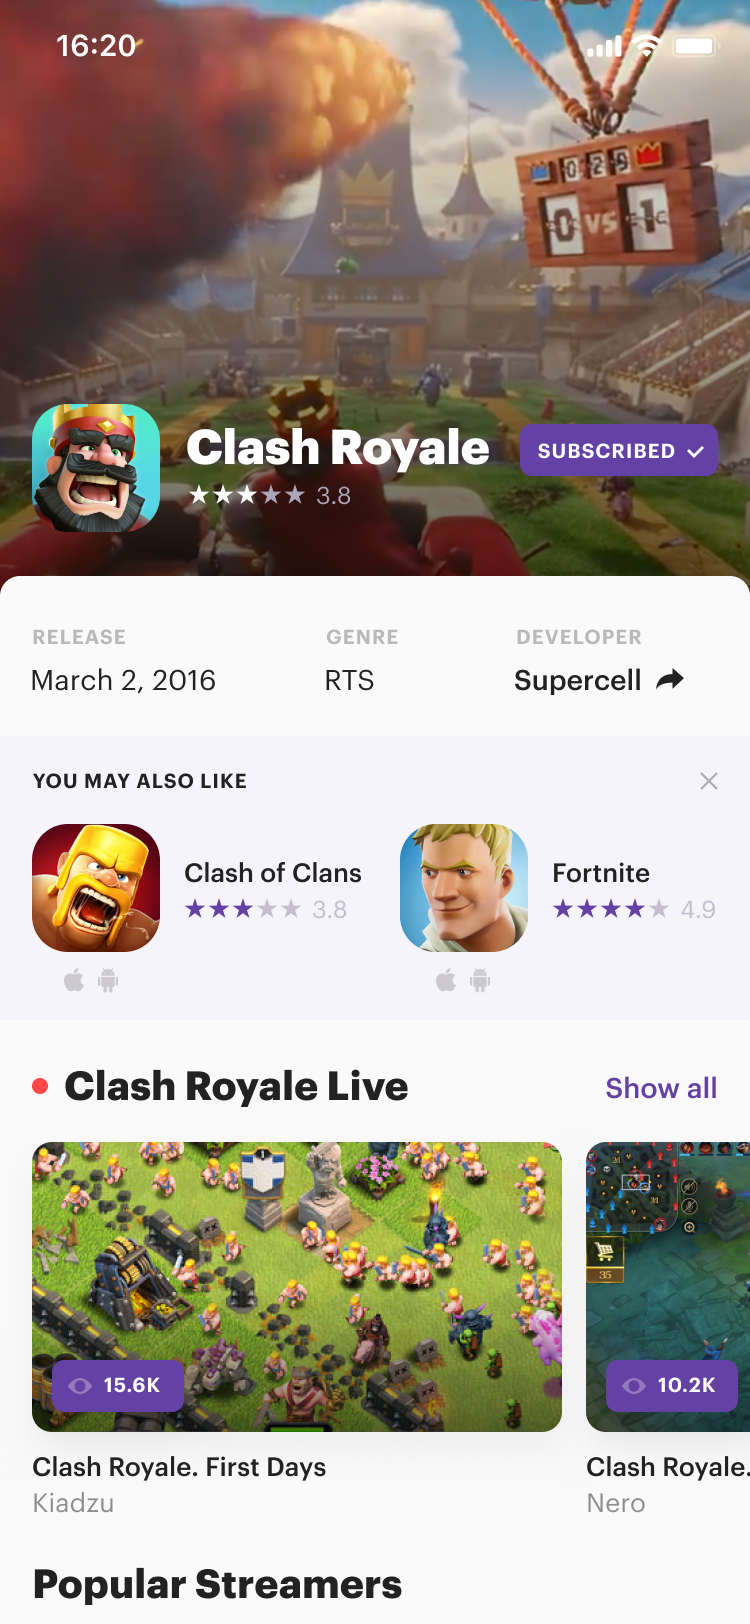 Twitch mobile. subscribed